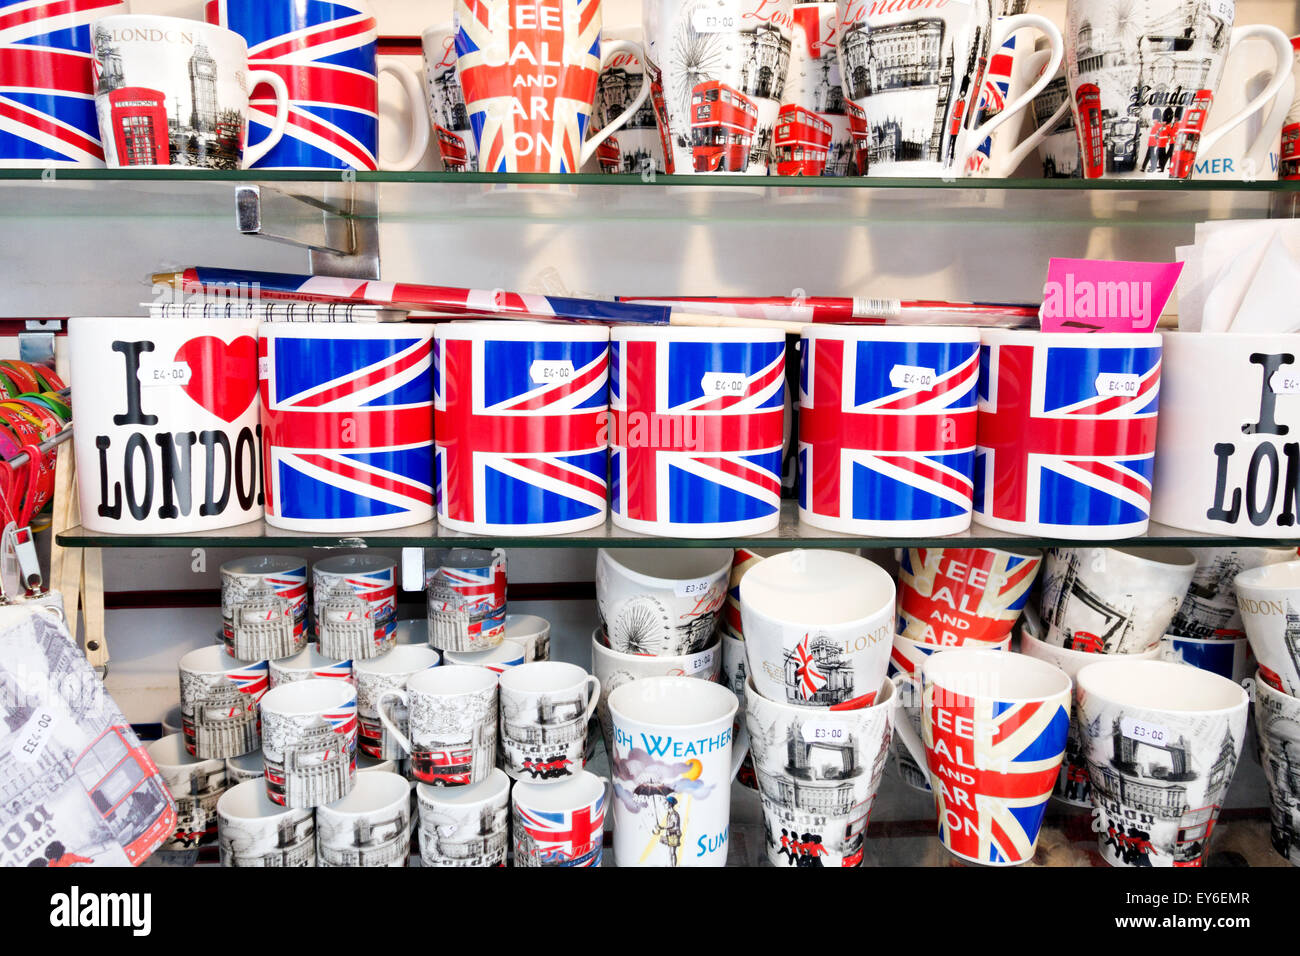 Wedding Gifts London: I Love London And British Cups Mugs, Gifts And Souvenirs